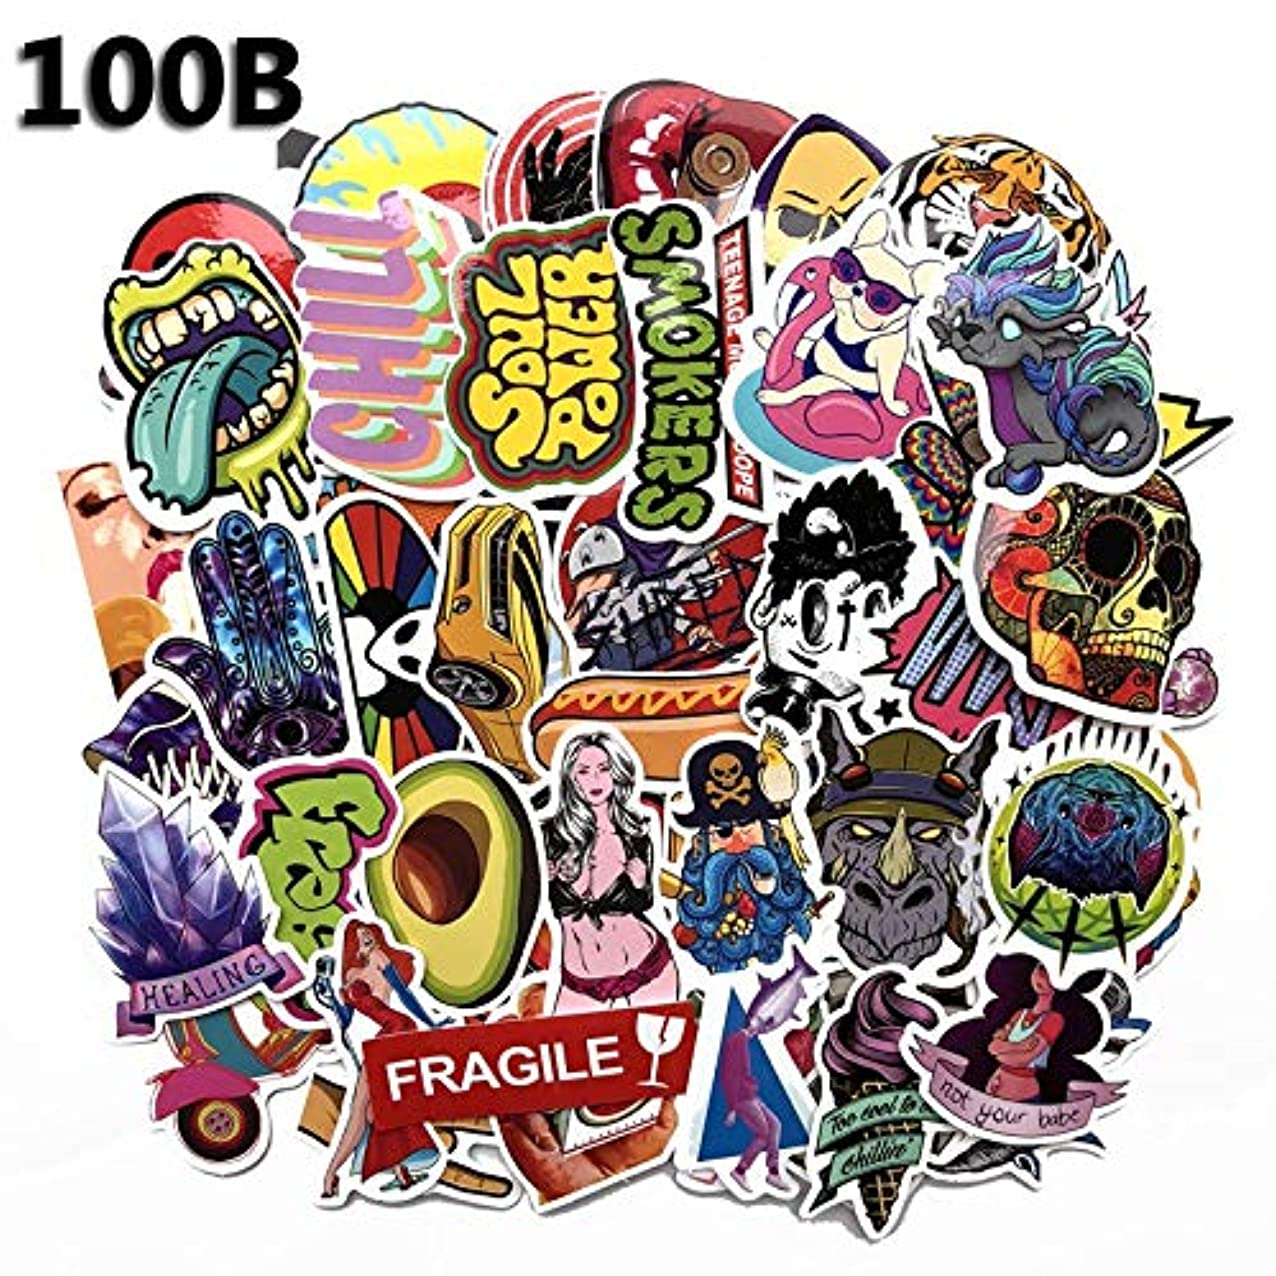 100pcs Phone Office Laptop Stickers On Laptop Toys for Children Car Trolley Case Trunk Guitar Graffiti Stikers shmbwvoojiydr983